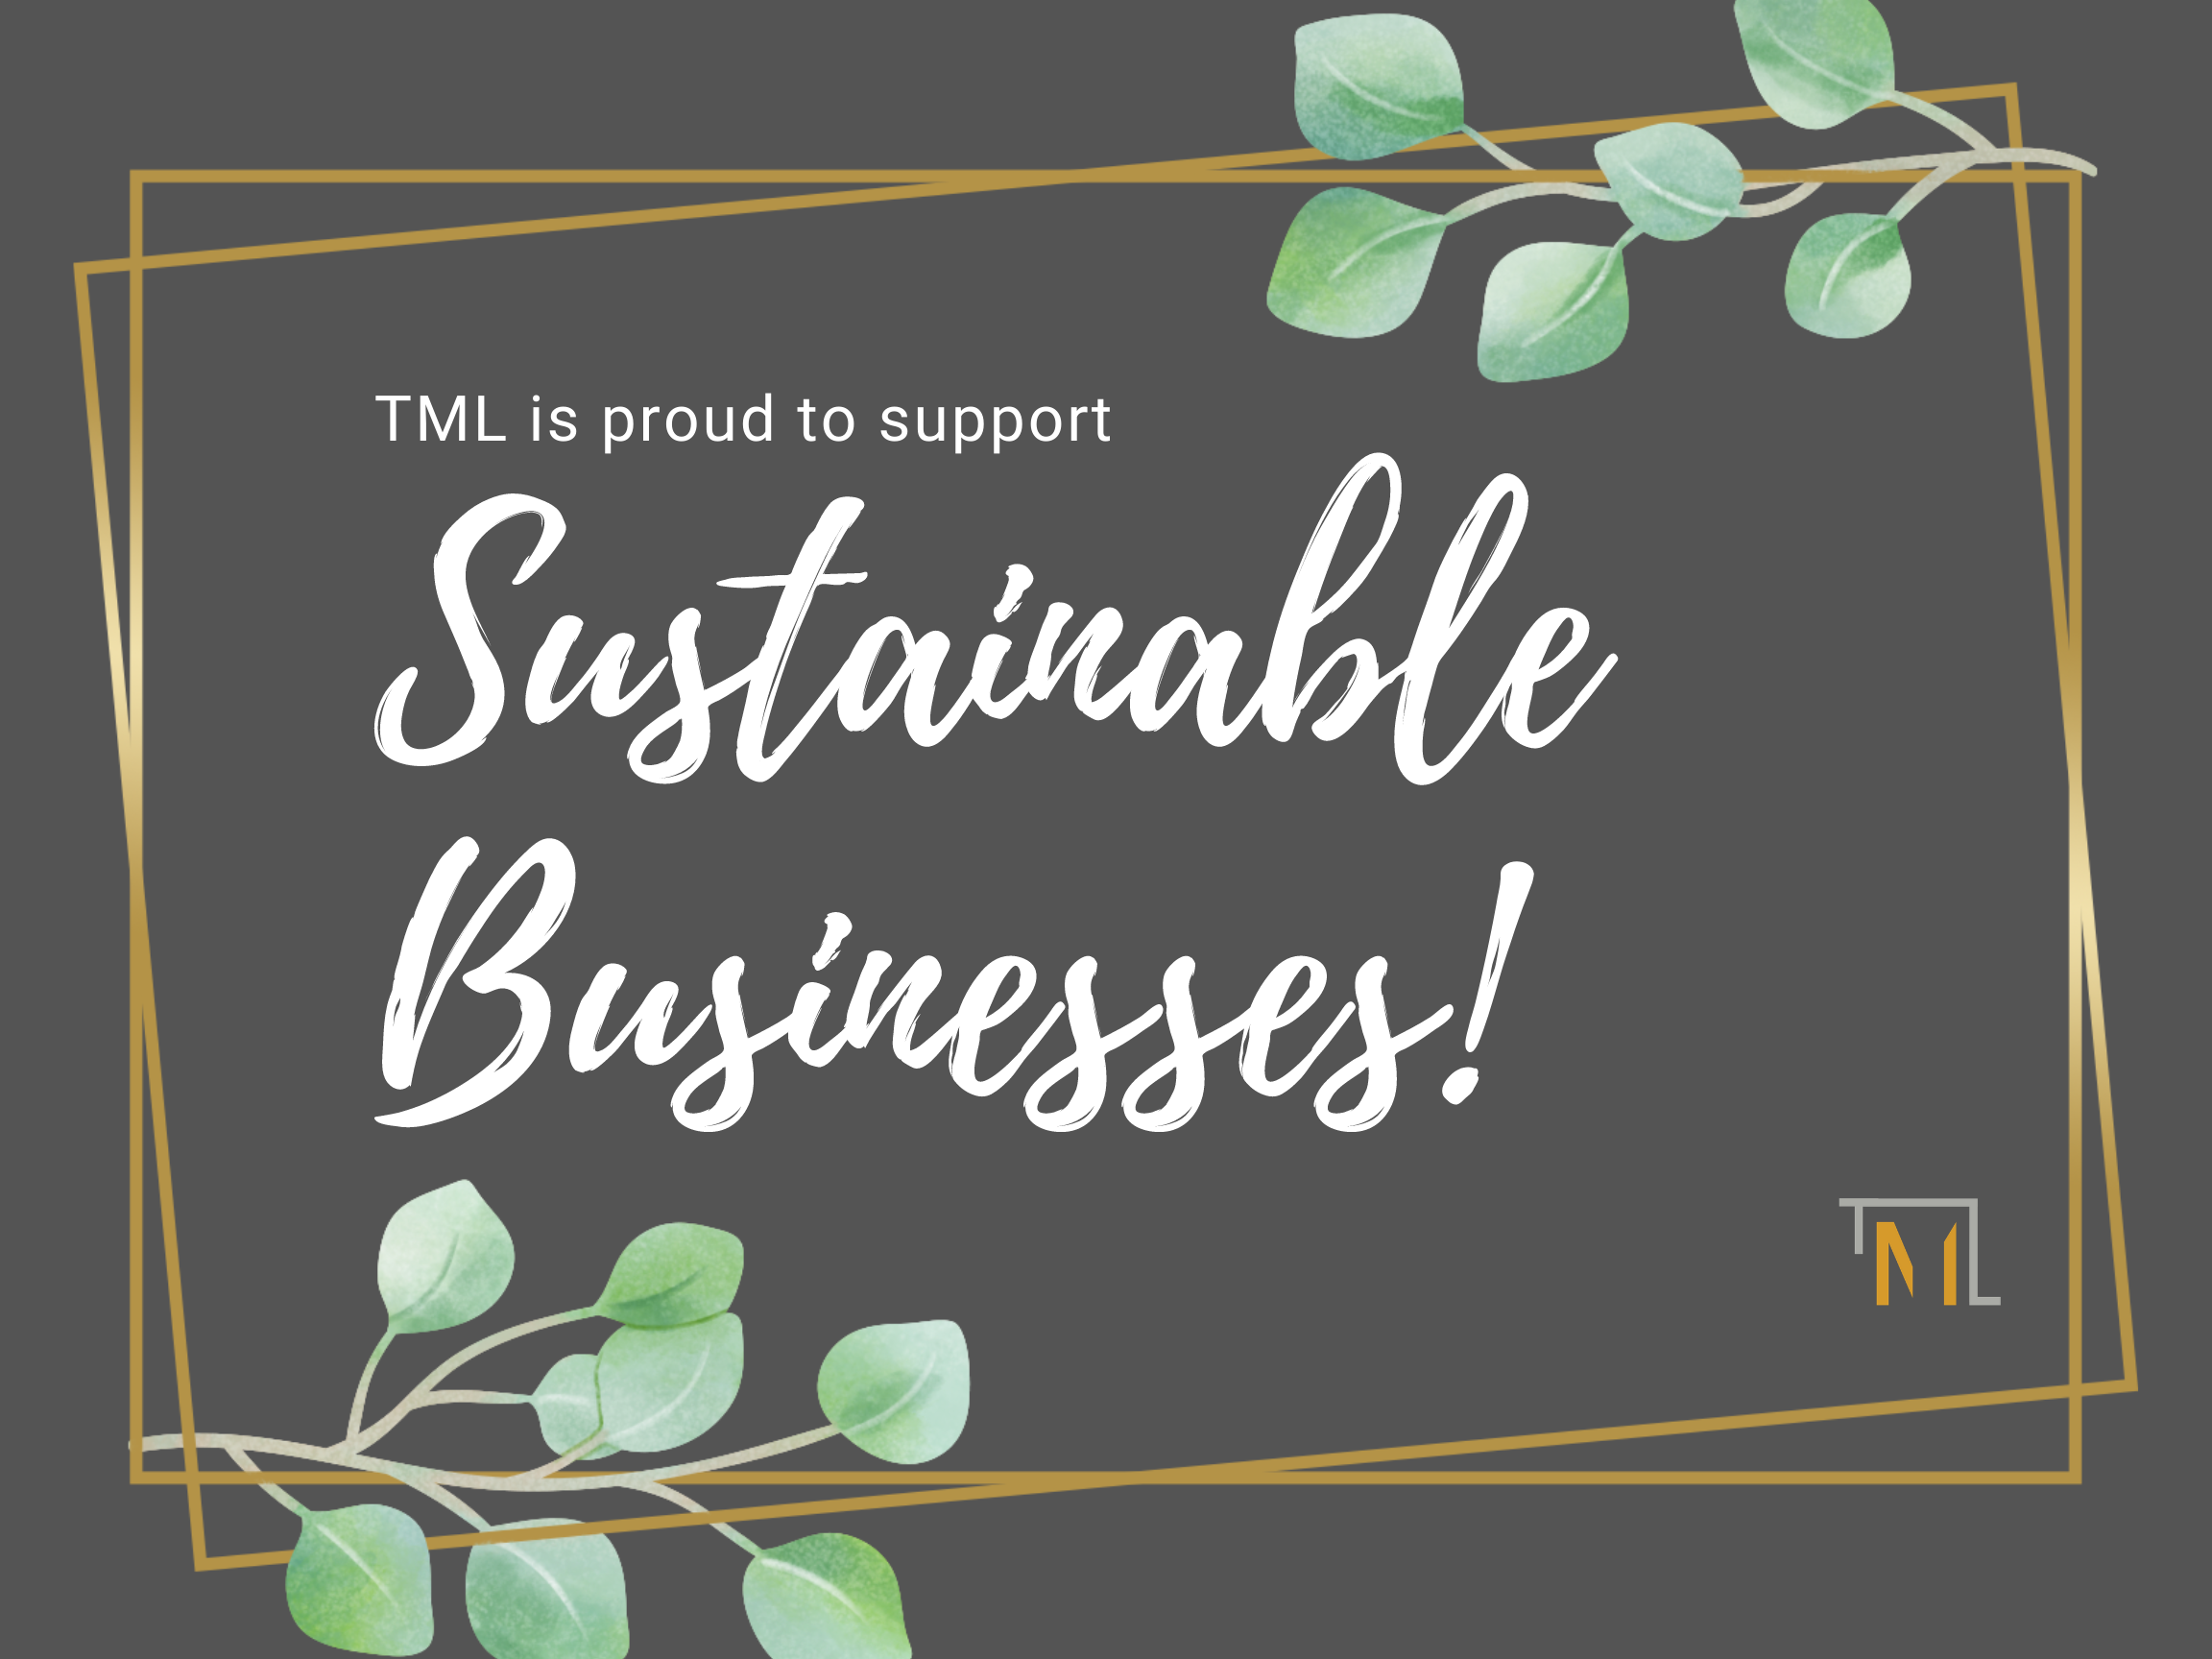 TML is proud to support sustainable businesses